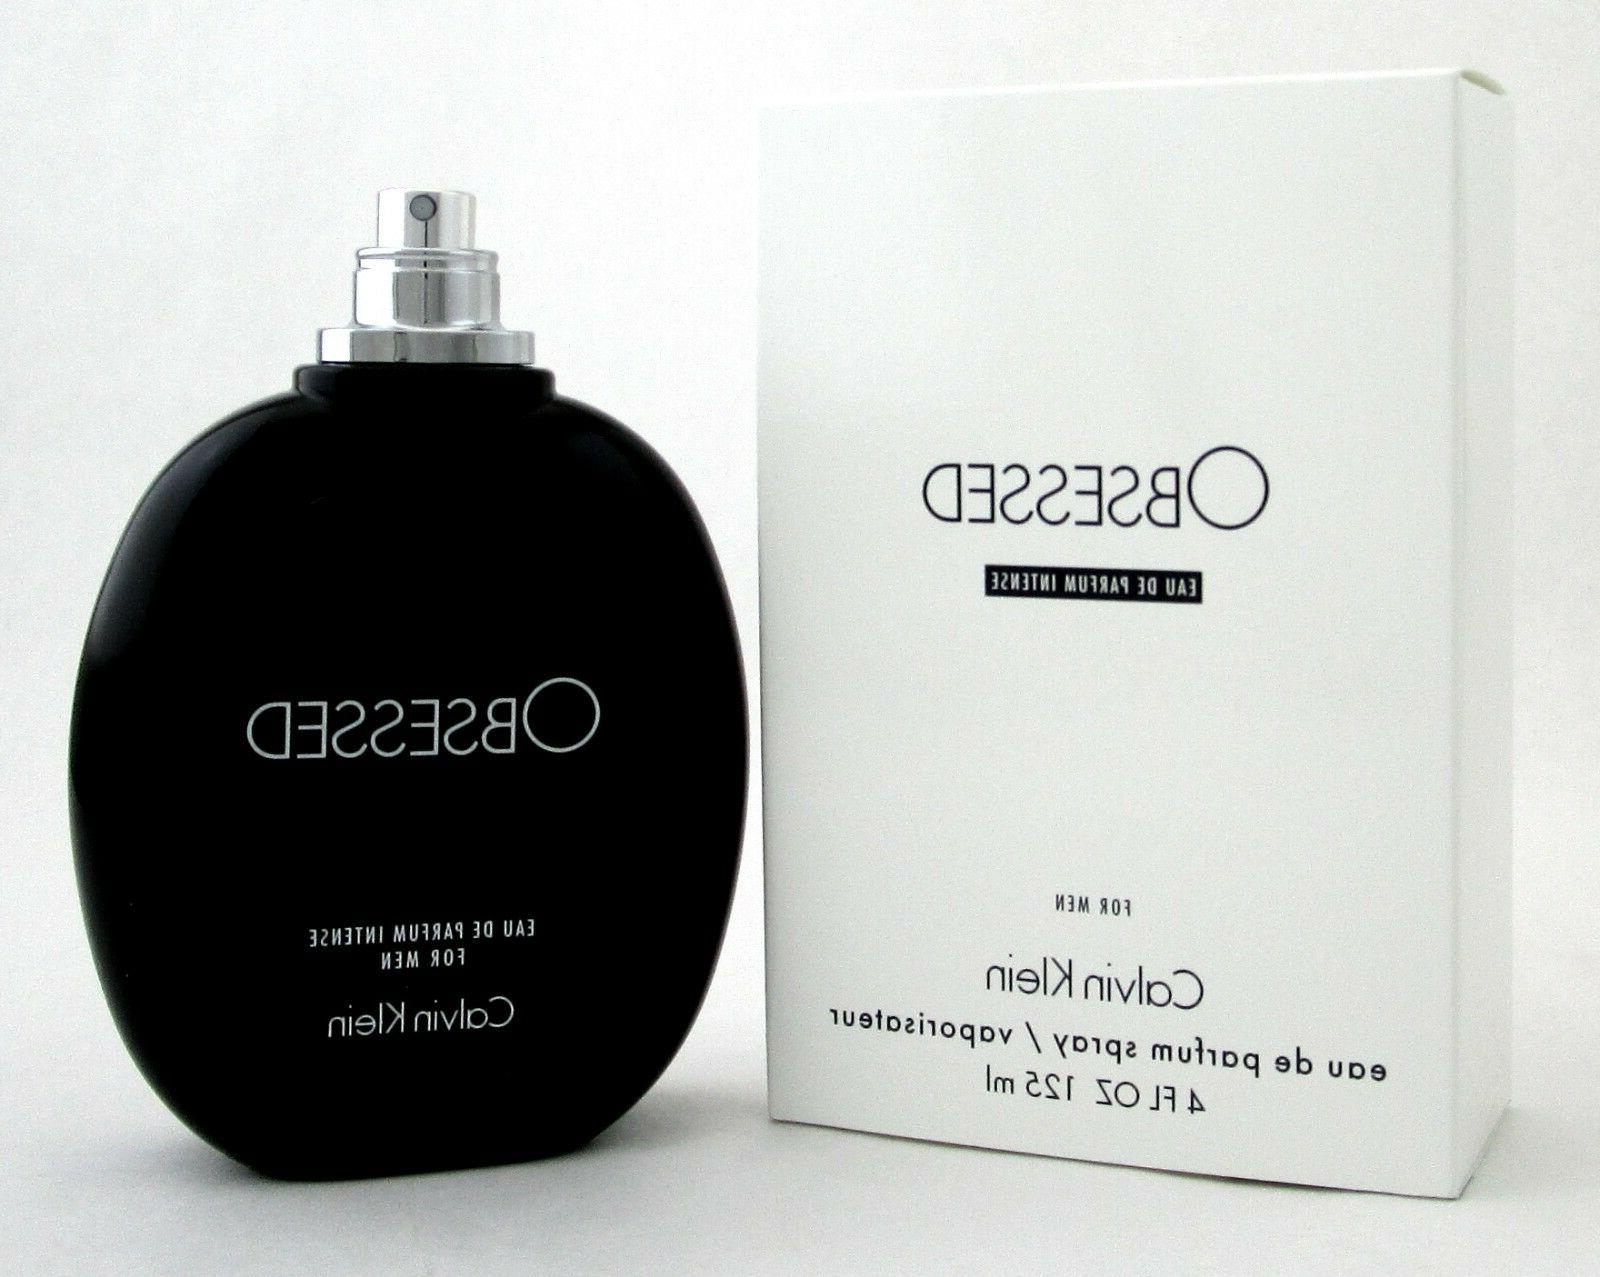 Obsessed Intense by Calvin Klein Ck EDP Cologne for Men 4.0